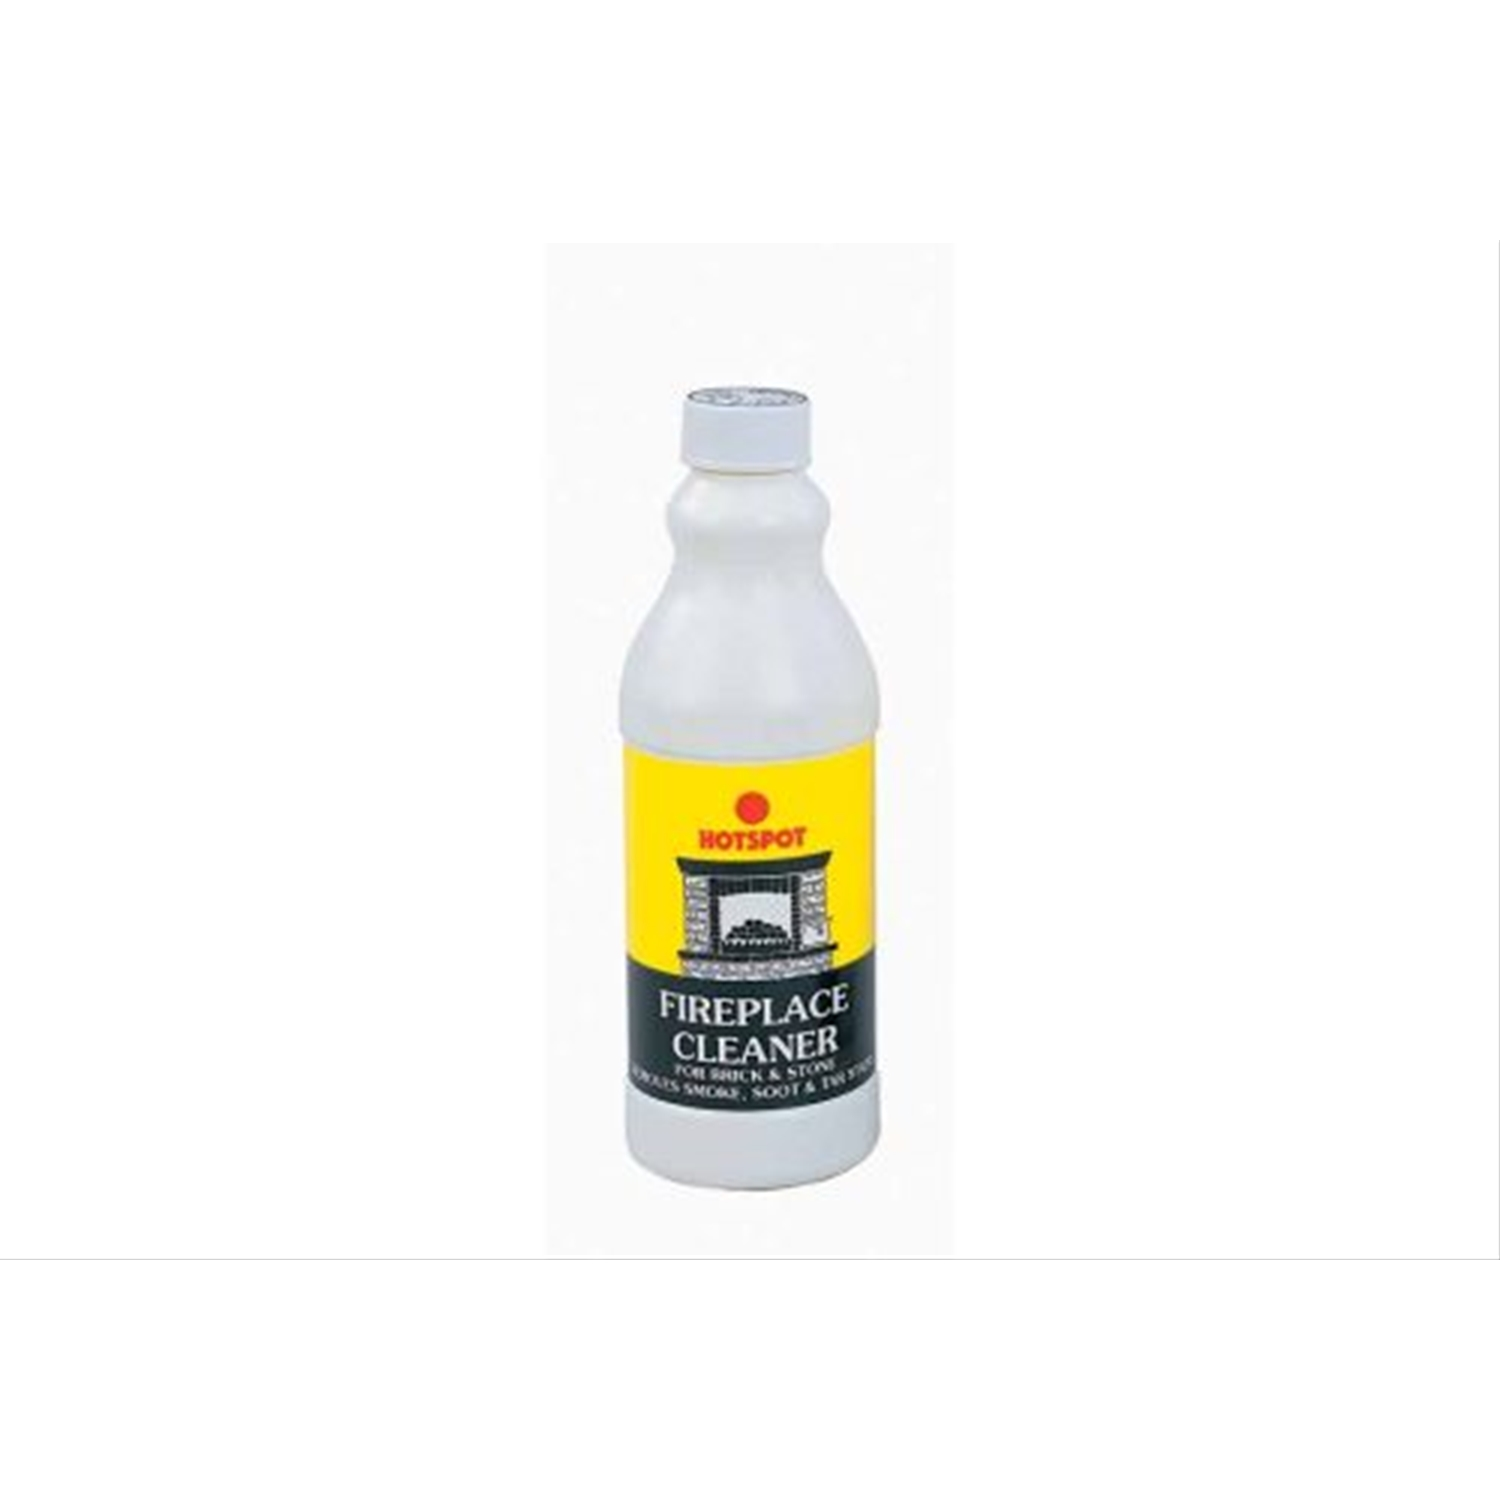 Image of Hotspot Fireplace Cleaner 500ml